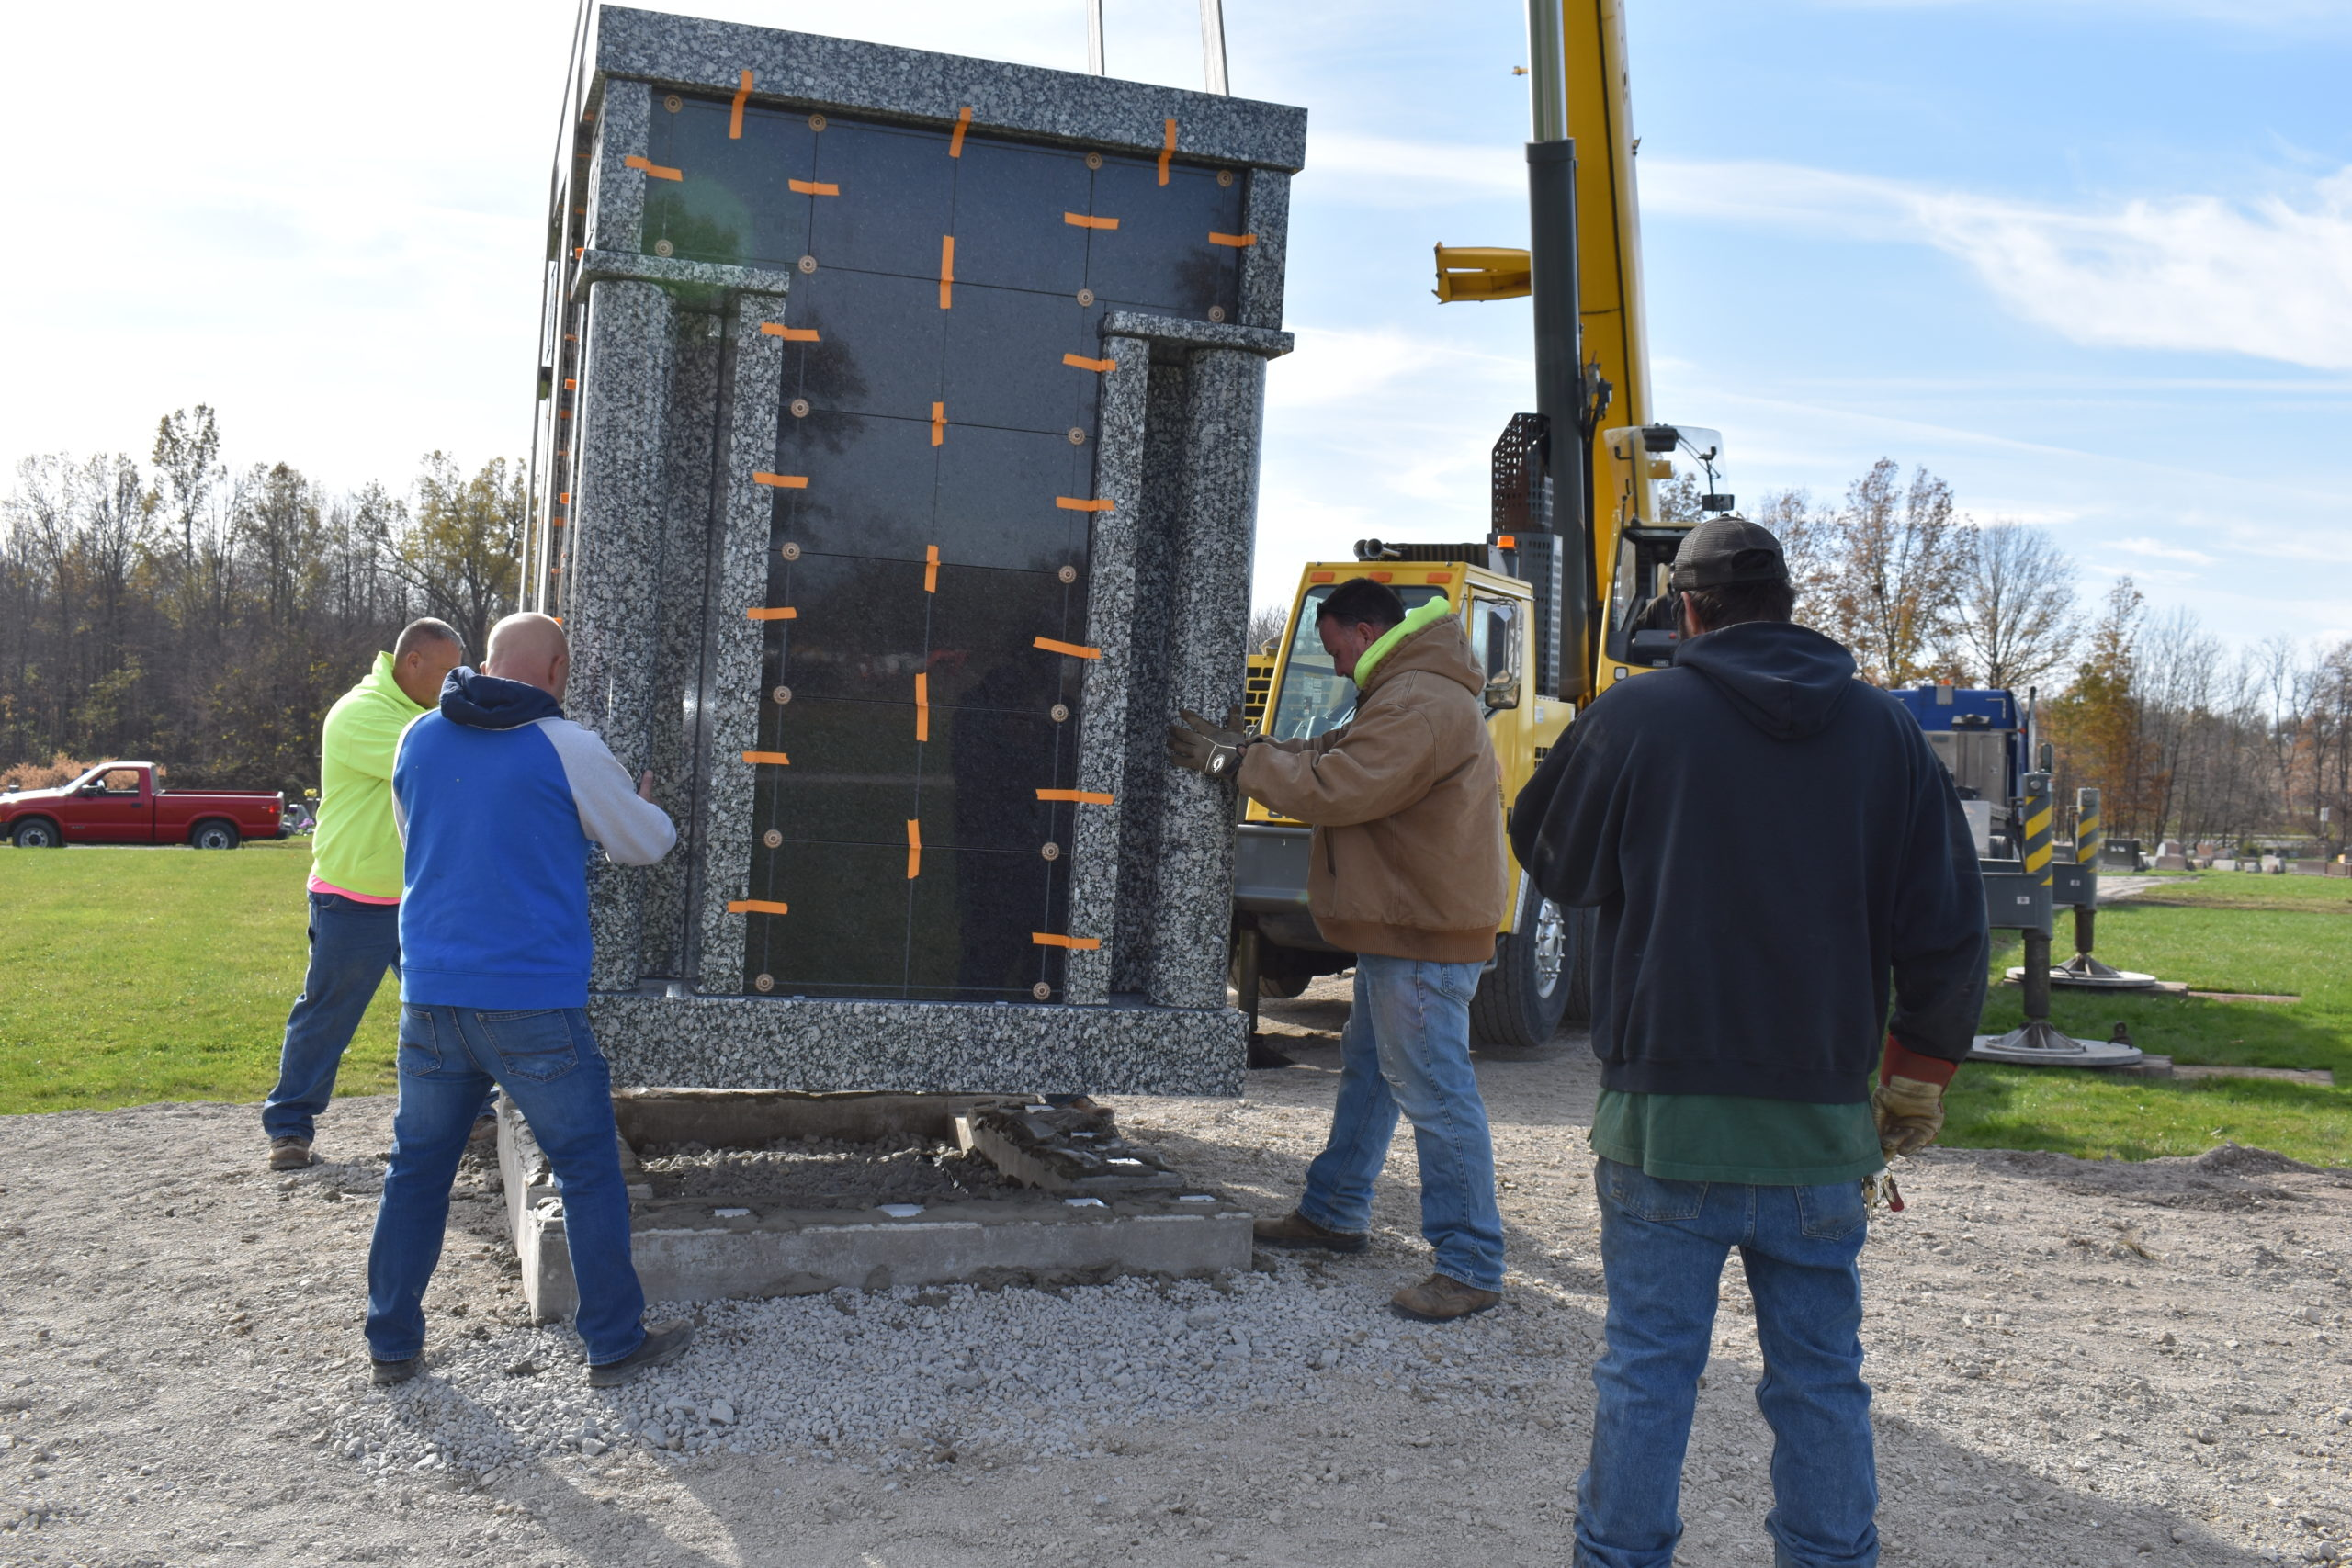 Brookfield road crew members Matt O'Dell, left, and Mark Hughes, second from right, and Jim DeChristefero of Niles Monument position a columbarium as a crane operator with T. Bruce Campbell lowers it onto a pedestal at Brookfield Township Cemetery on Nov. 5.